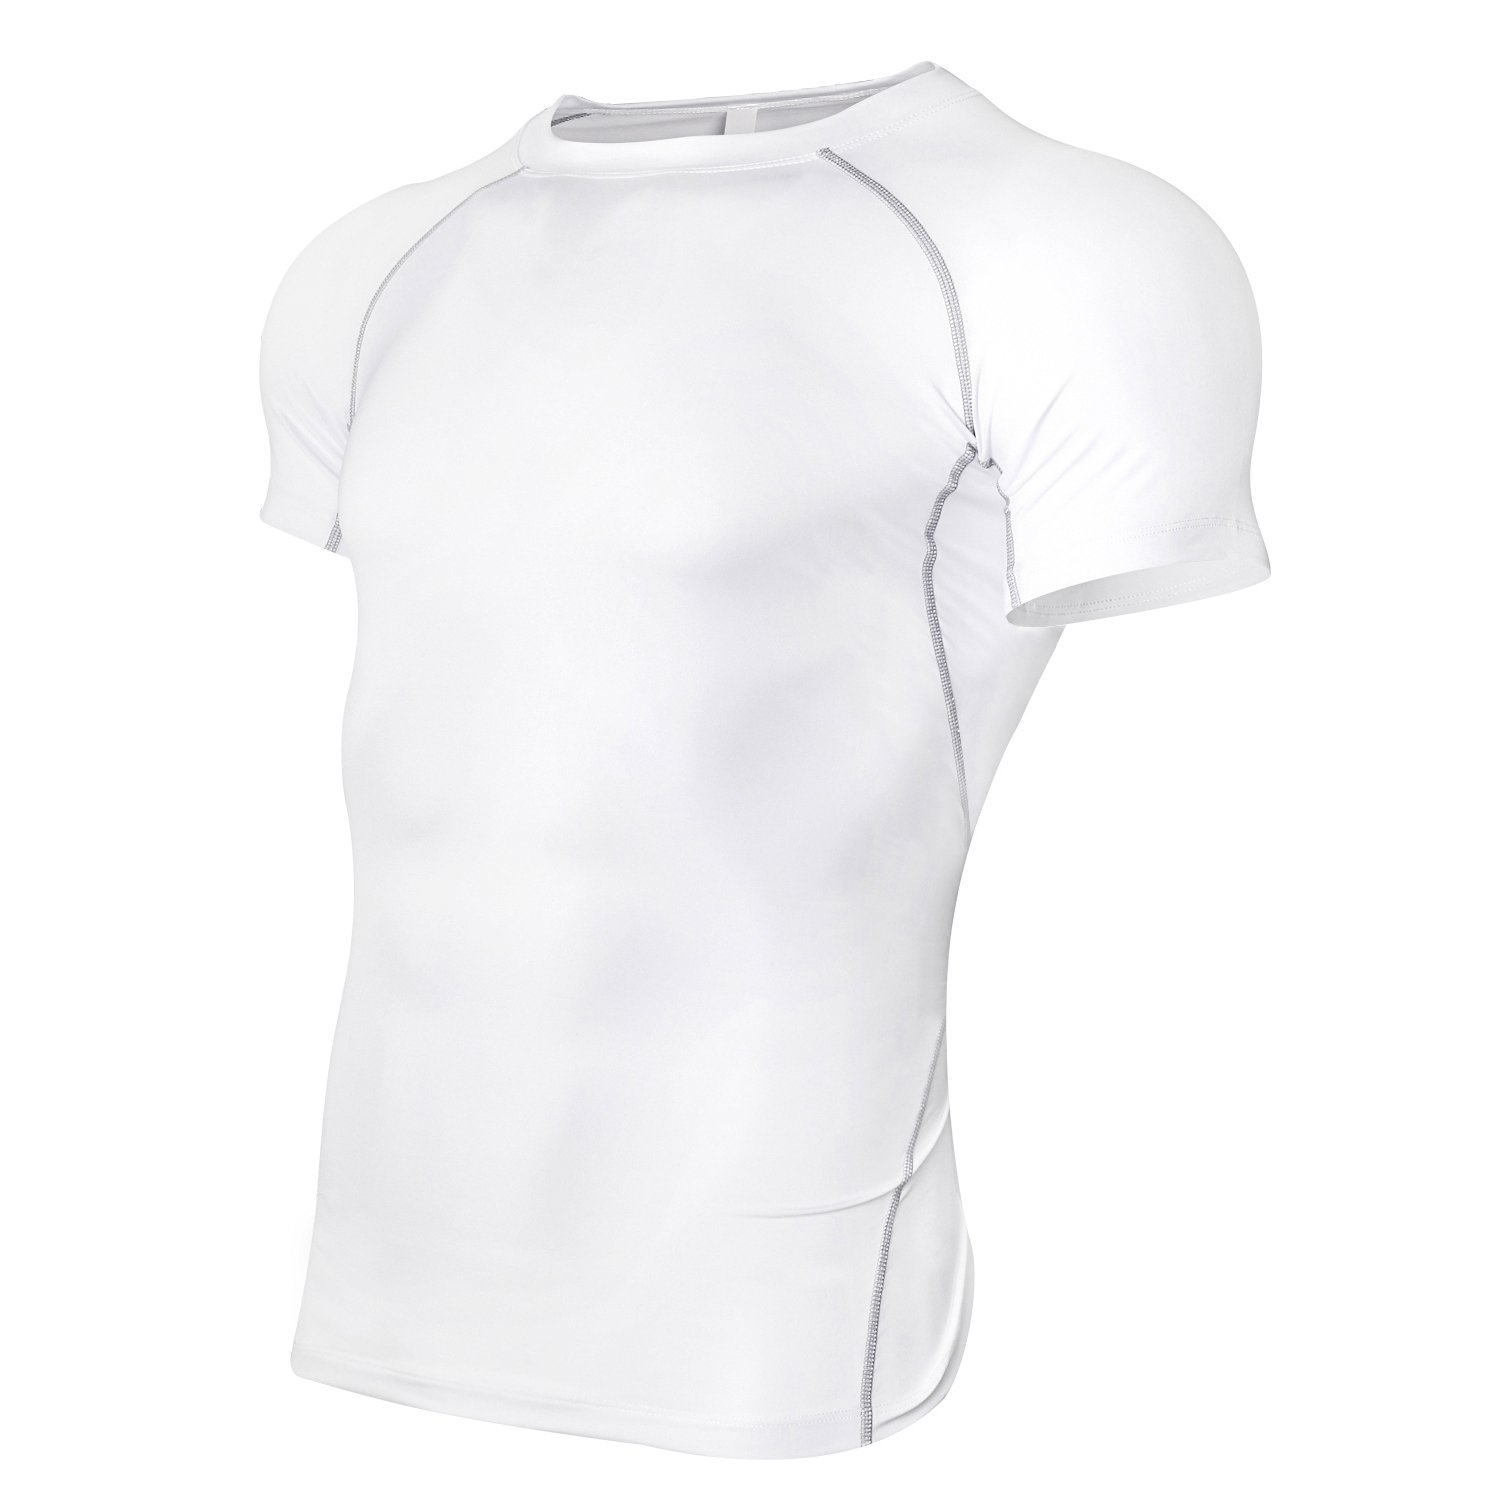 RoxZoom Men's Compression Short Sleeve T-Shirts, Cool Dry Compression Baselayer Tees Moisture Wicking Athletic T-Shirt - White, Medium